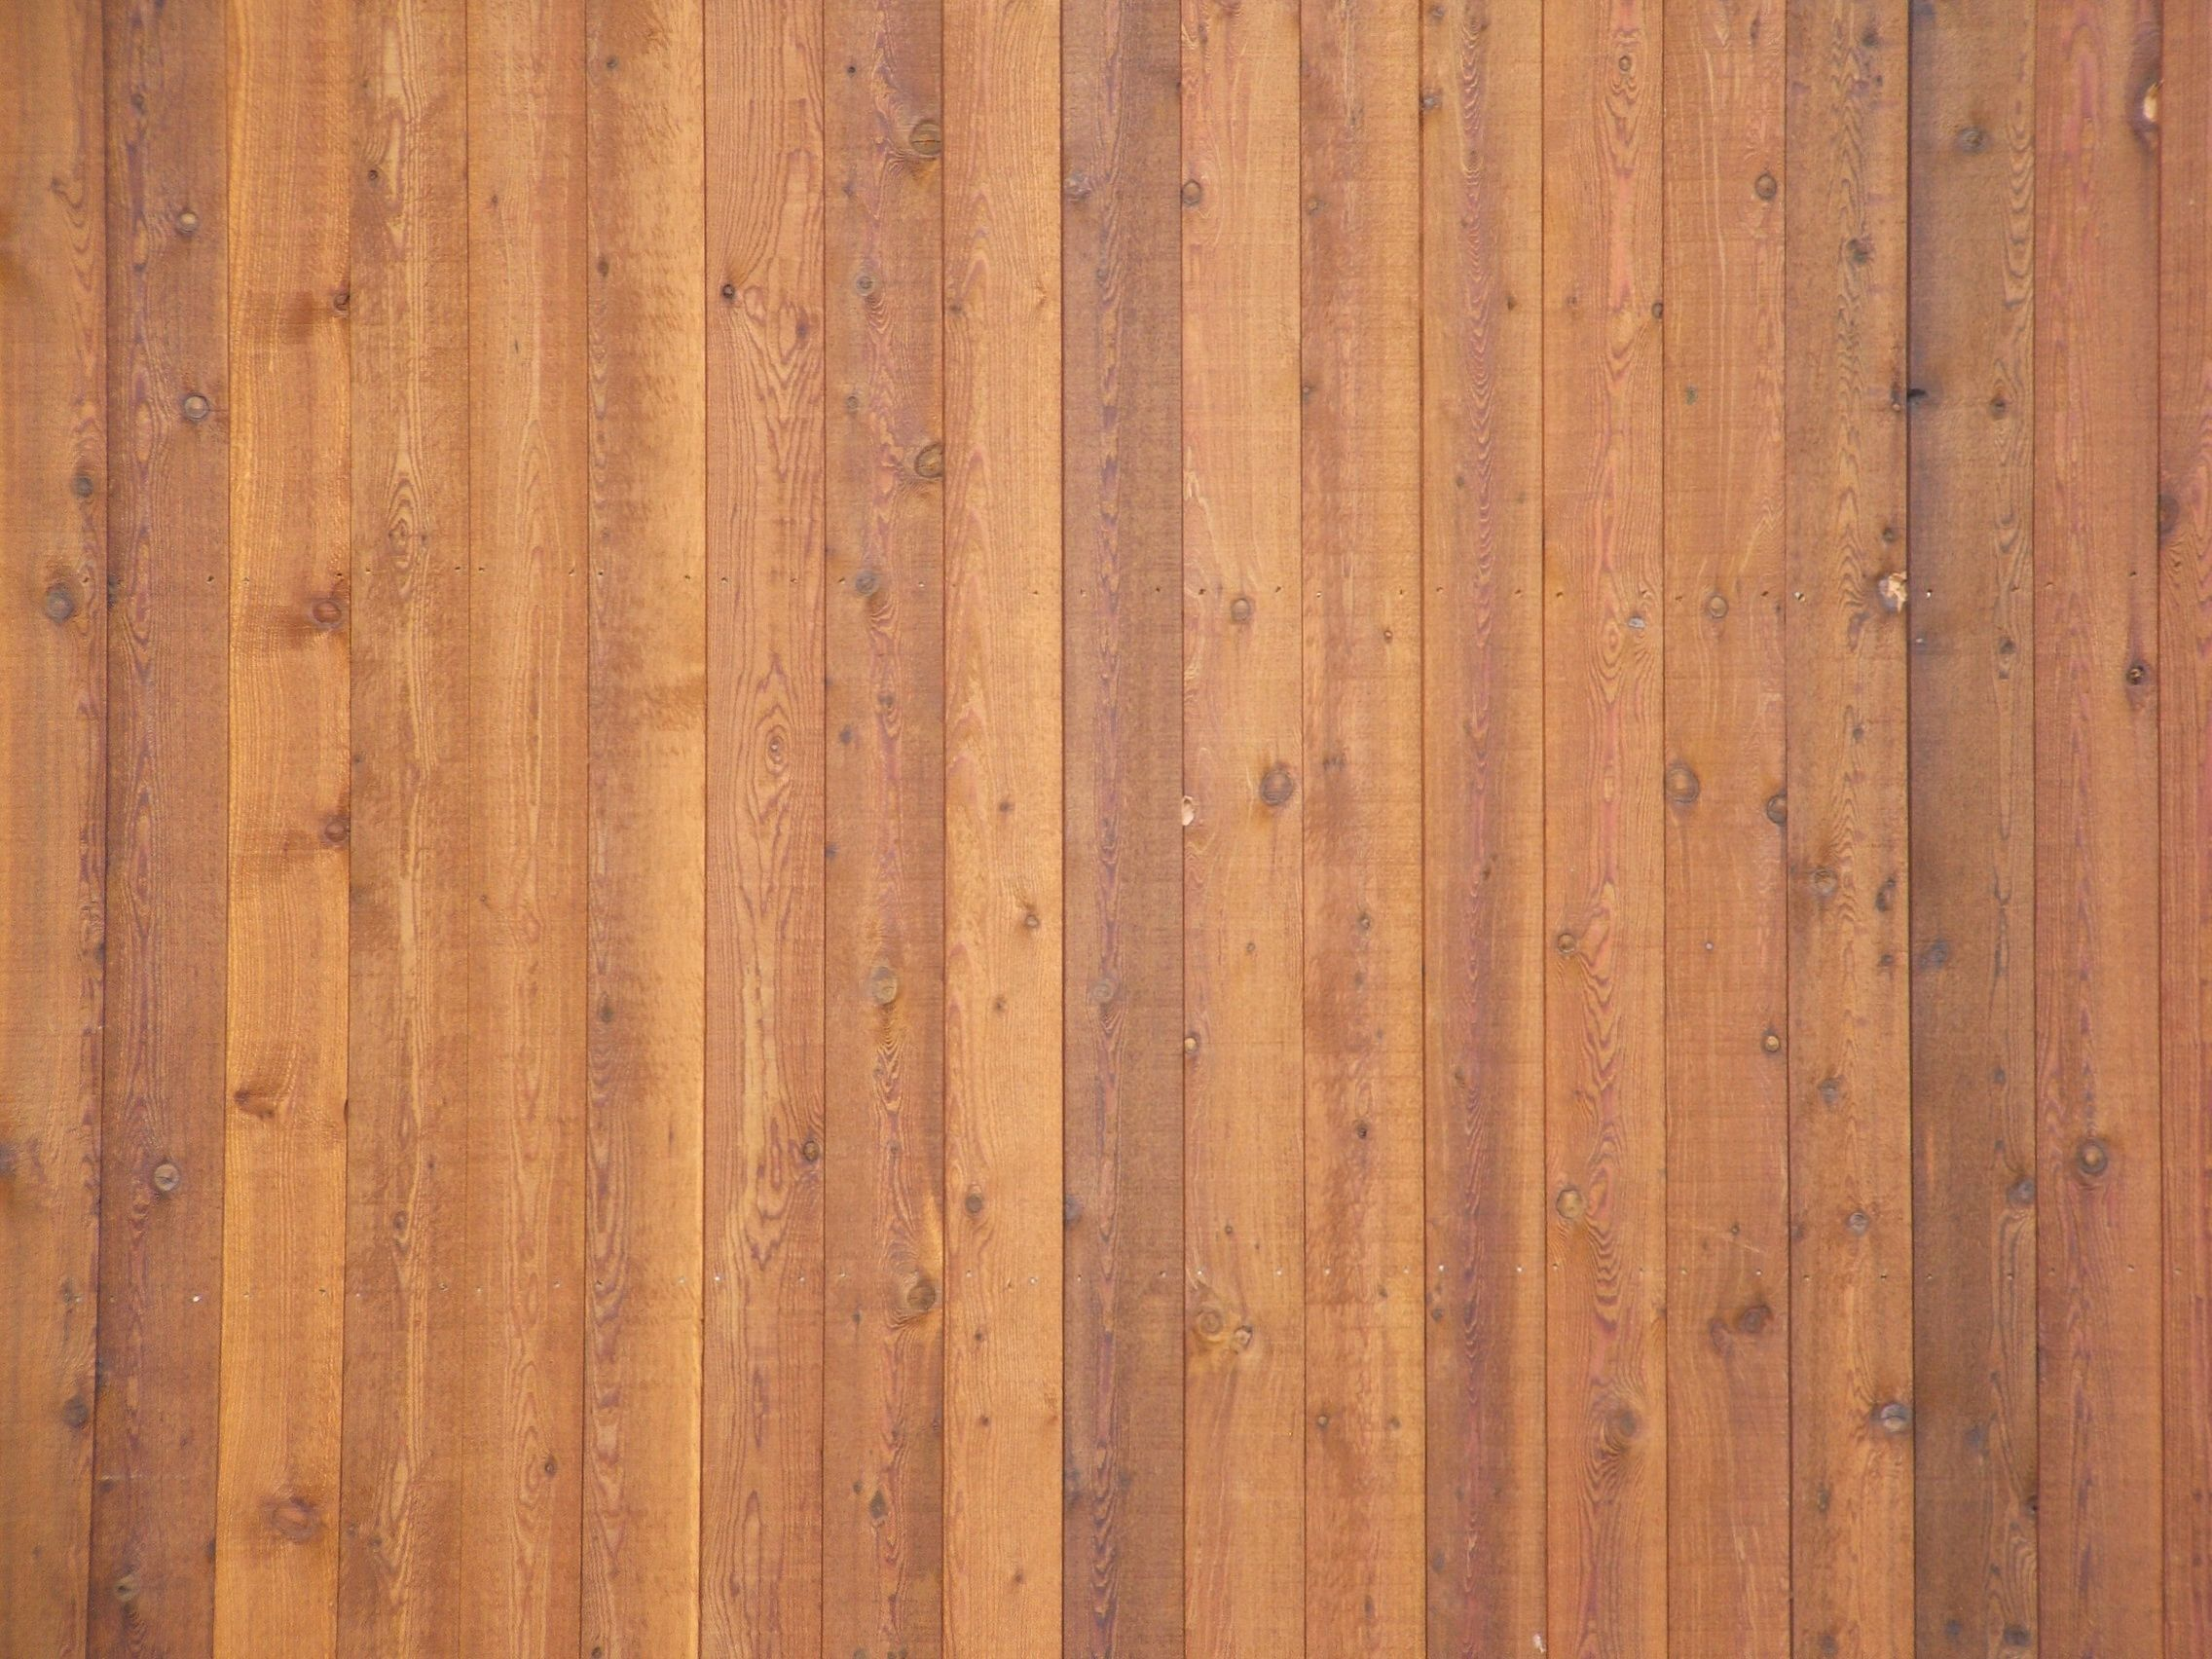 Wood wall texture photo